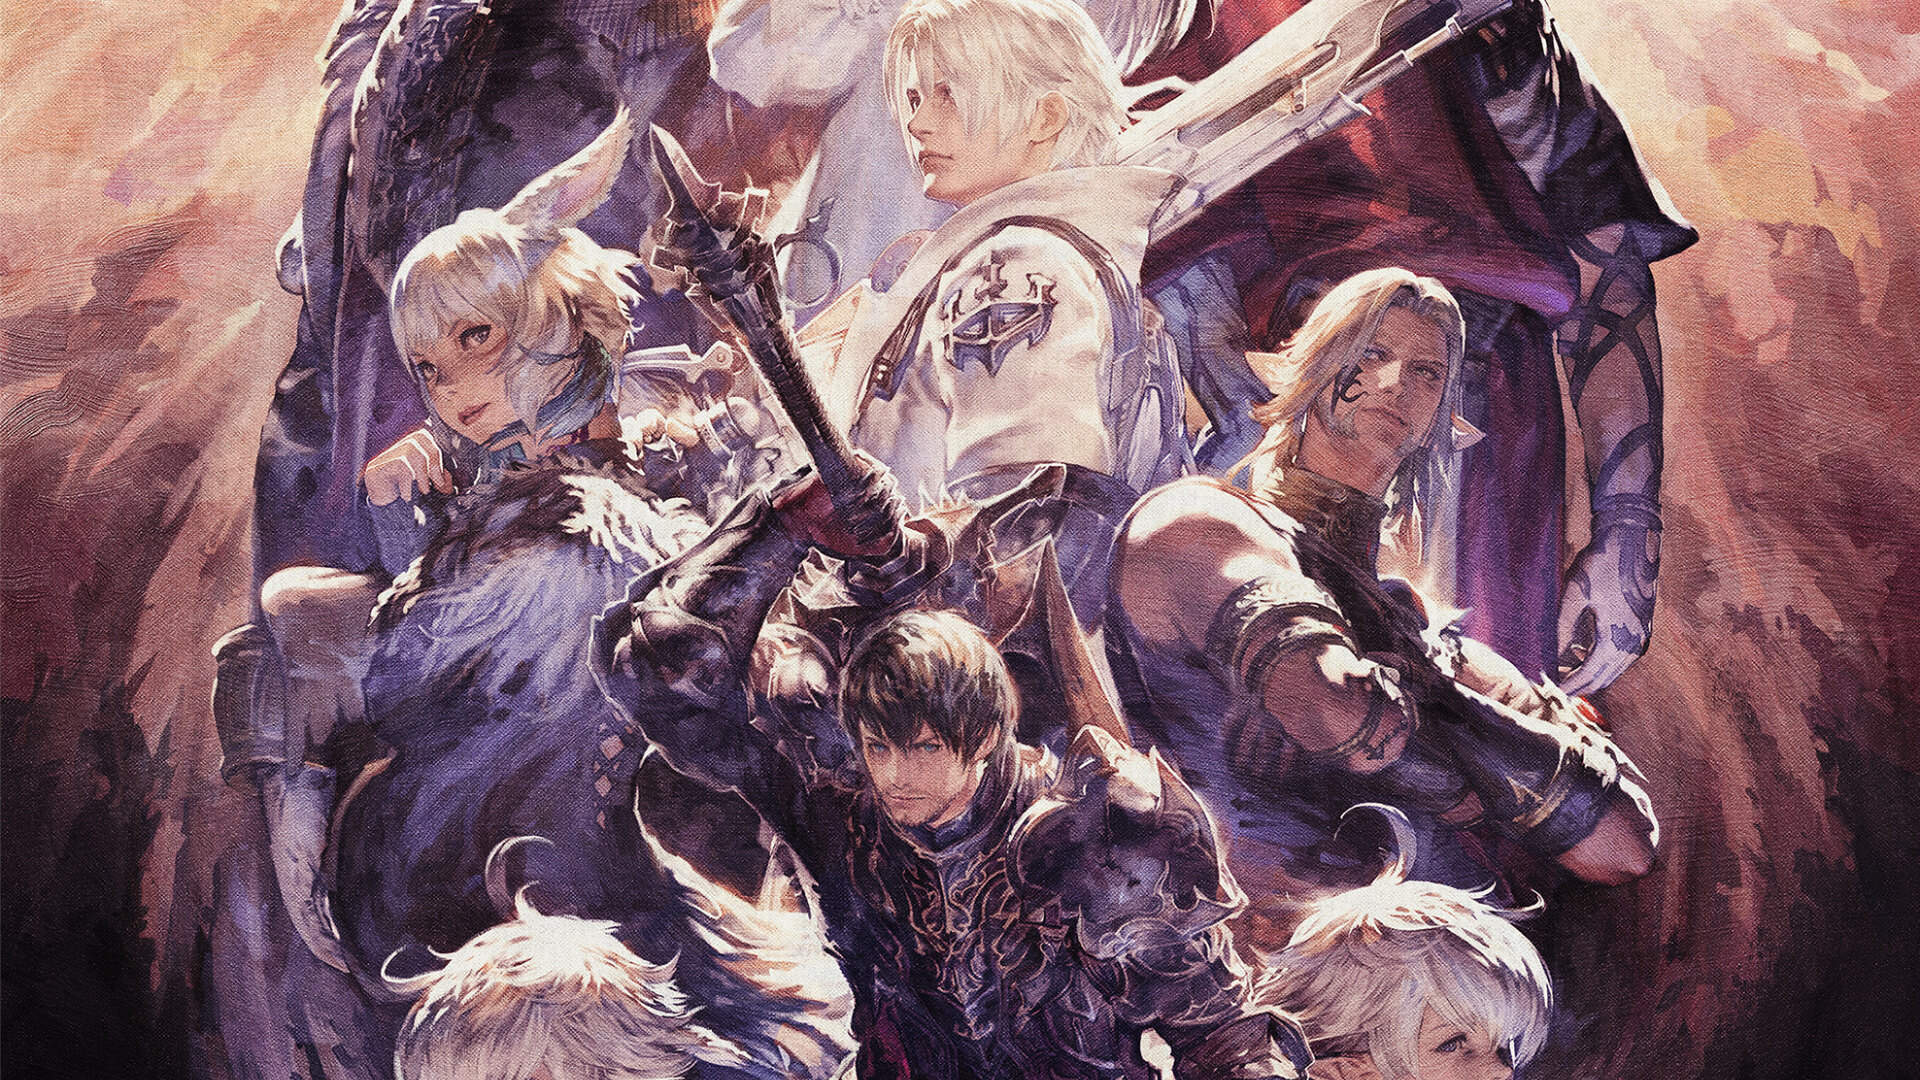 Final Fantasy 14 Shadowbringers Pre-Orders Could Affect First-Time Players